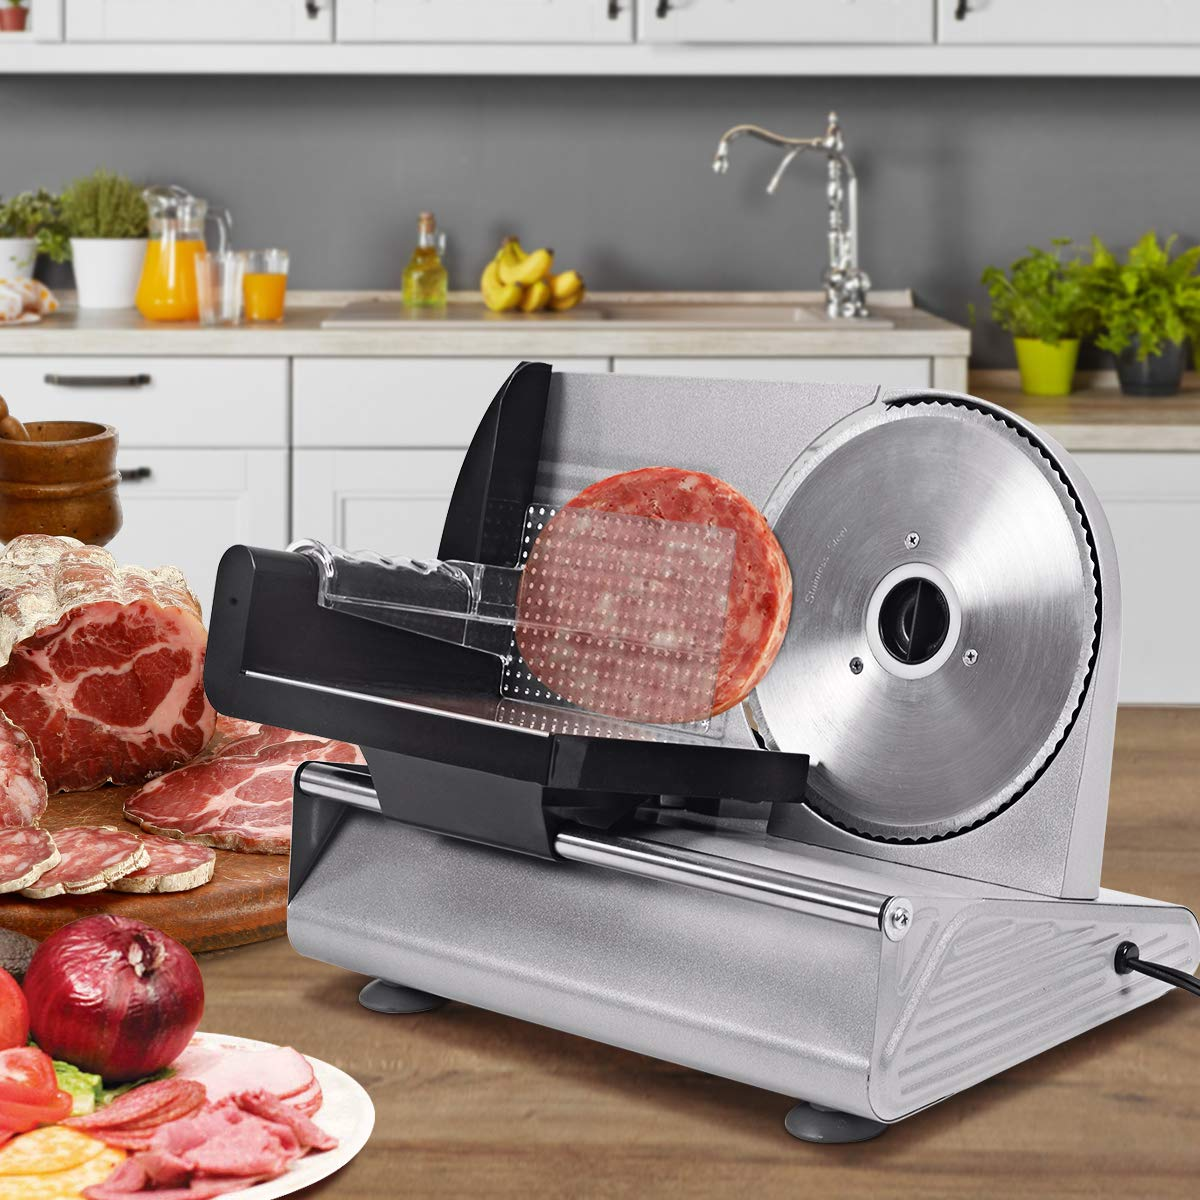 COSTWAY 160W Electric Meat Slicer Machine with Blade Safety Switch &  Non-Slip Feet, 19cm Stainless Steel Blade for Precision Slicing, Adjustable  Slice